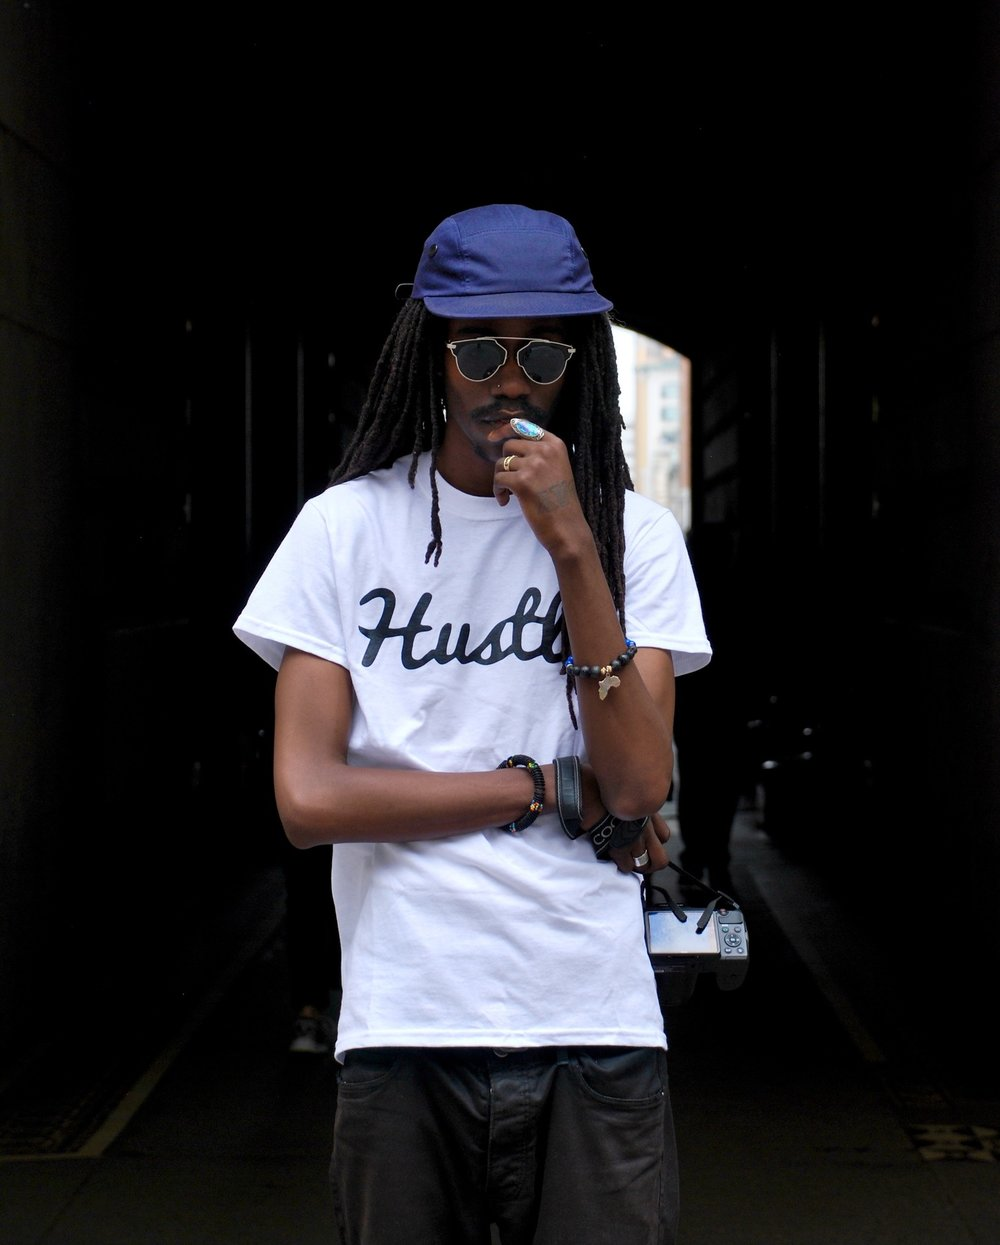 Hustle T Shirts from Mary Jane's Closet